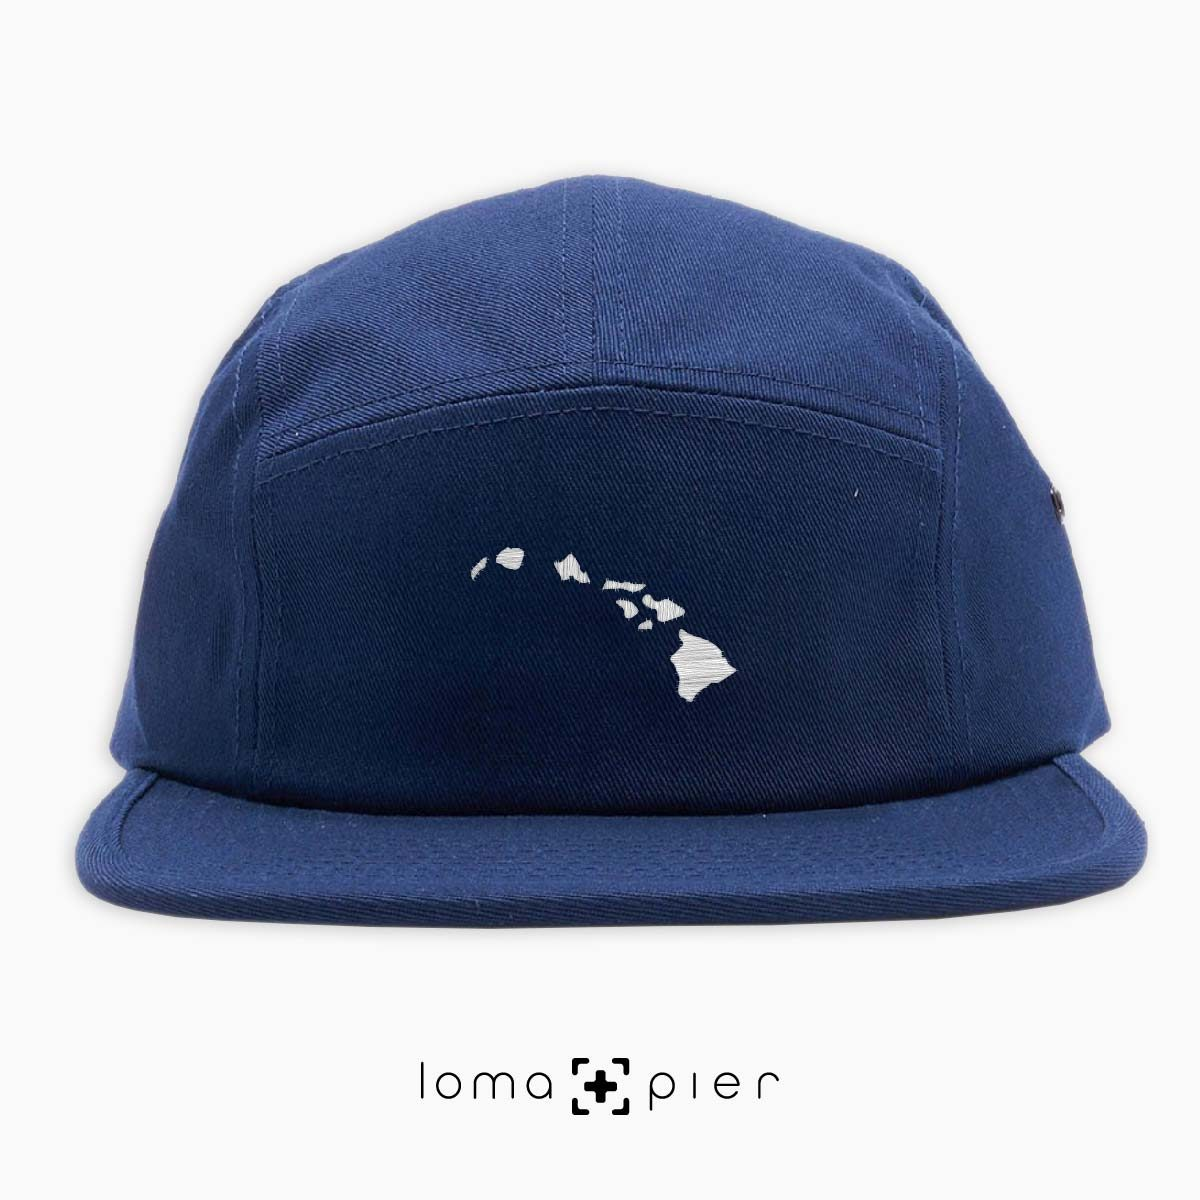 HAWAIIAN ISLANDS icon embroidered on a navy cotton 5-panel hat by loma+pier hat store